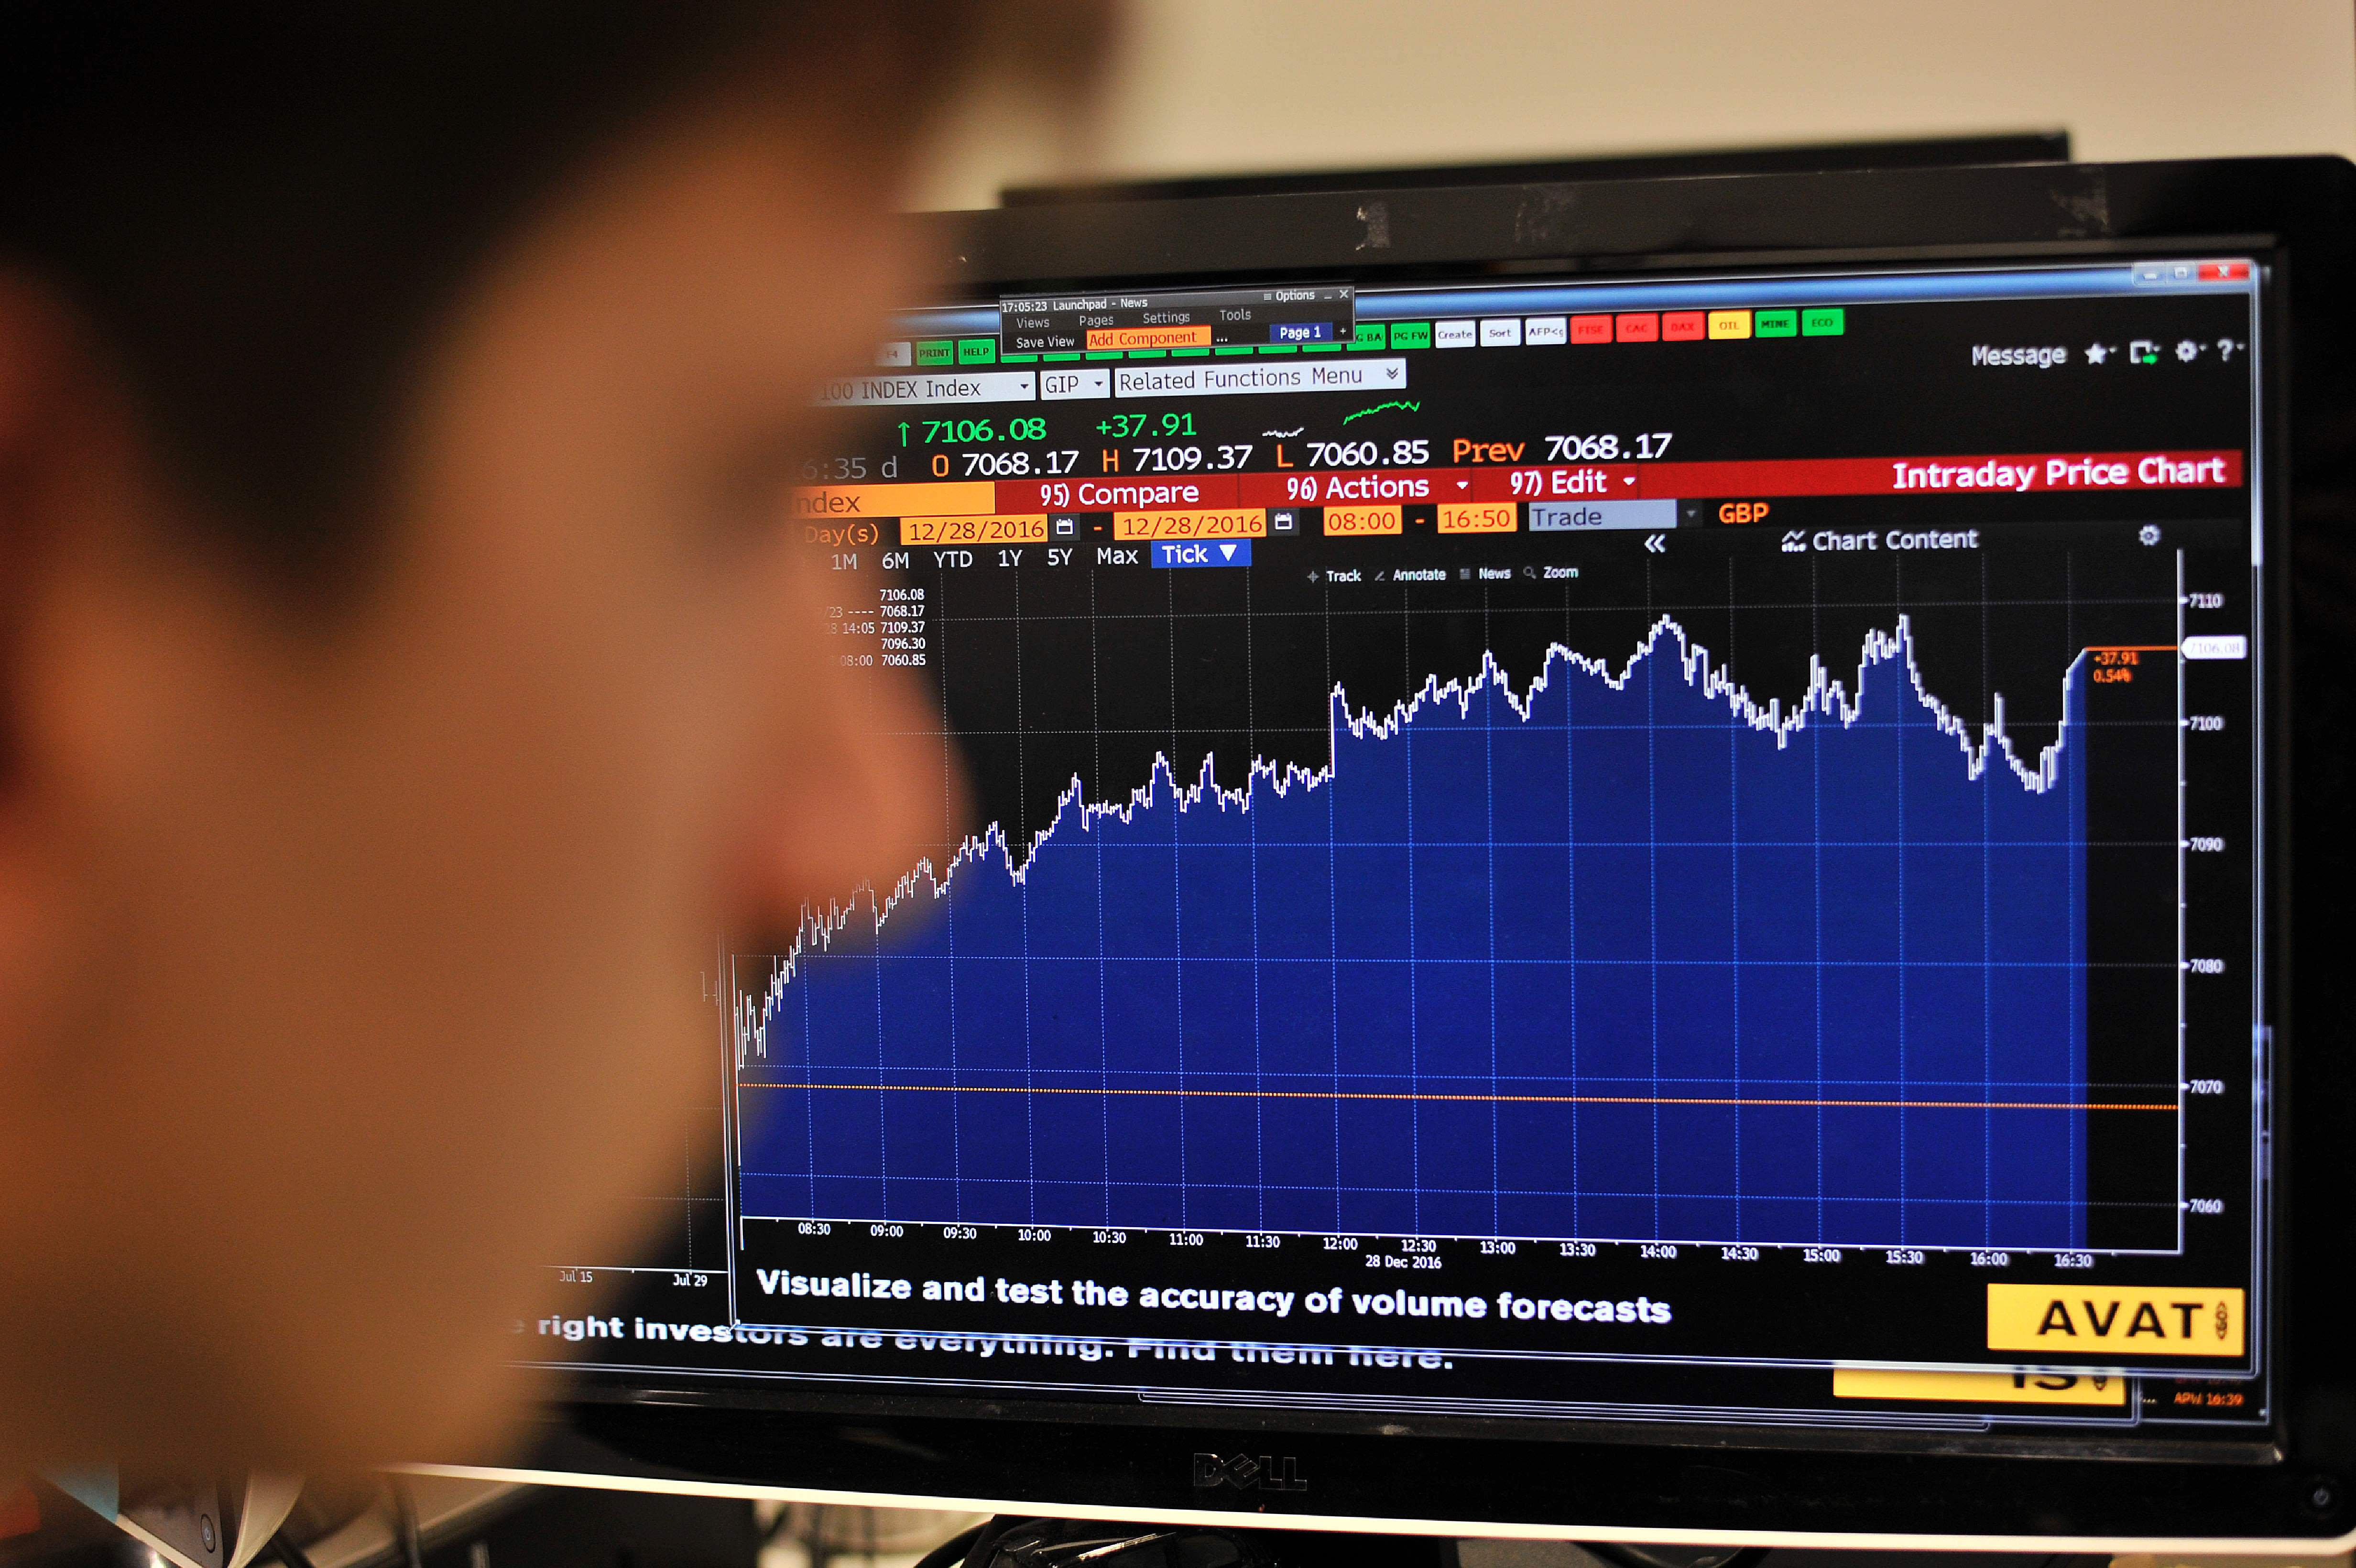 Vanguard claims investors clueless about investment styles